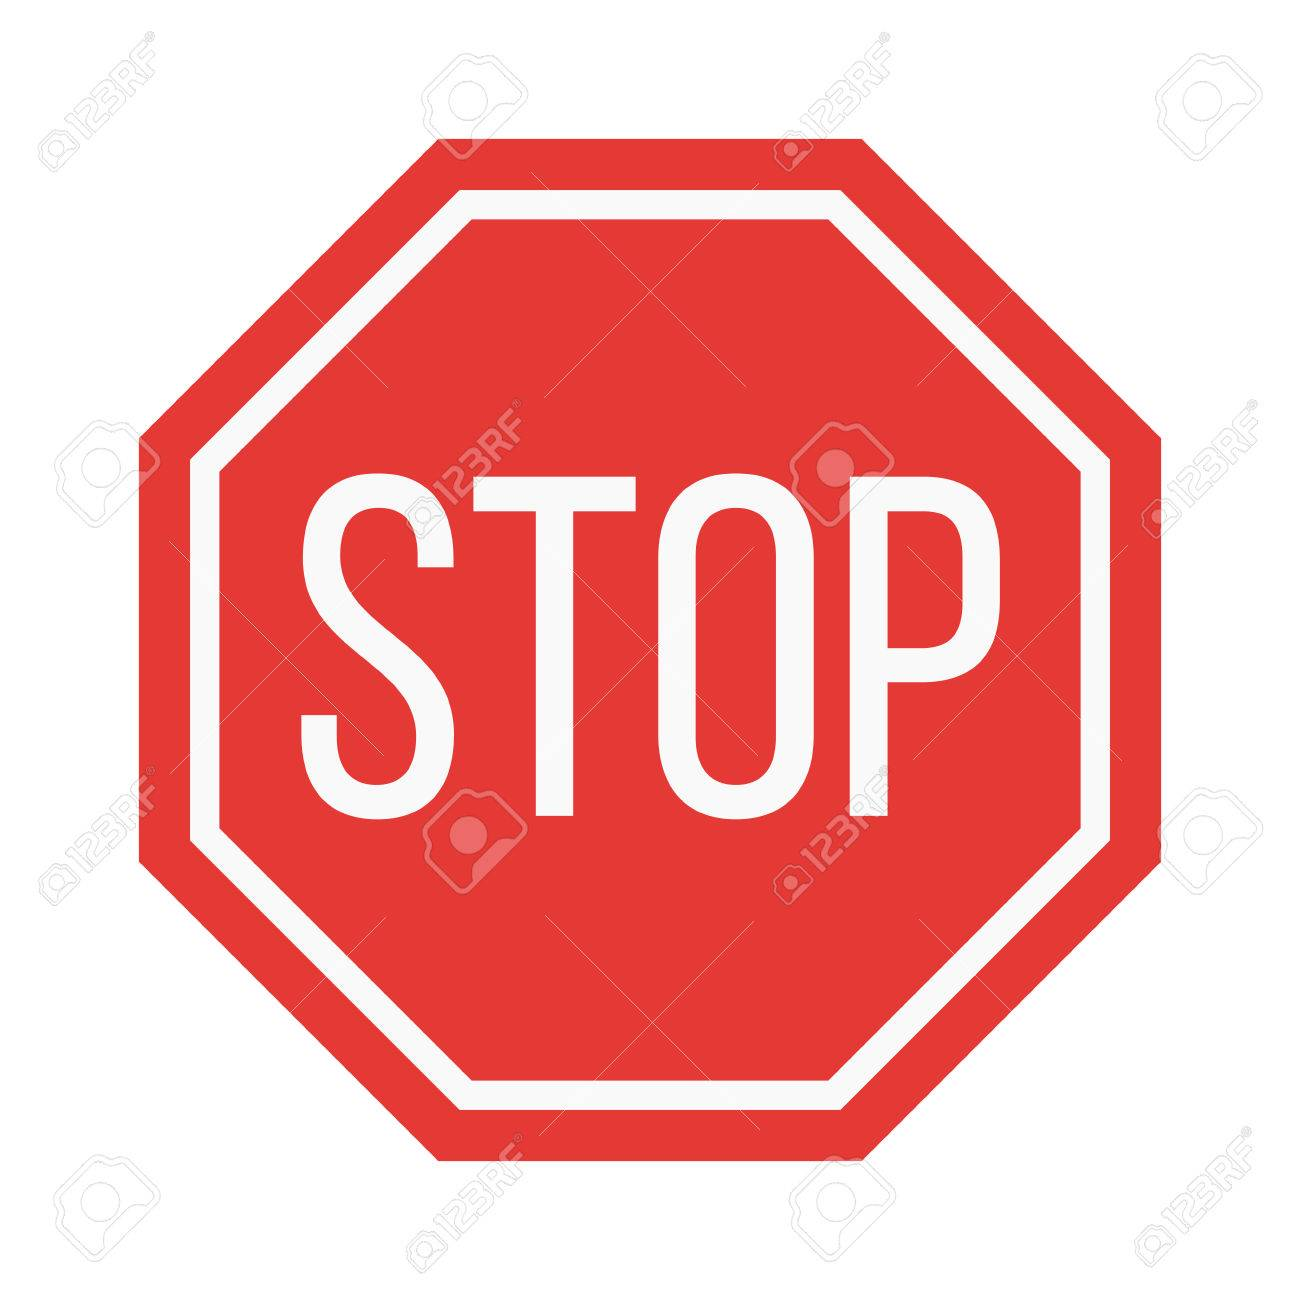 prohibition stop sign vector illustration warning danger symbol rh 123rf com stop sign vector png stop sign vector png